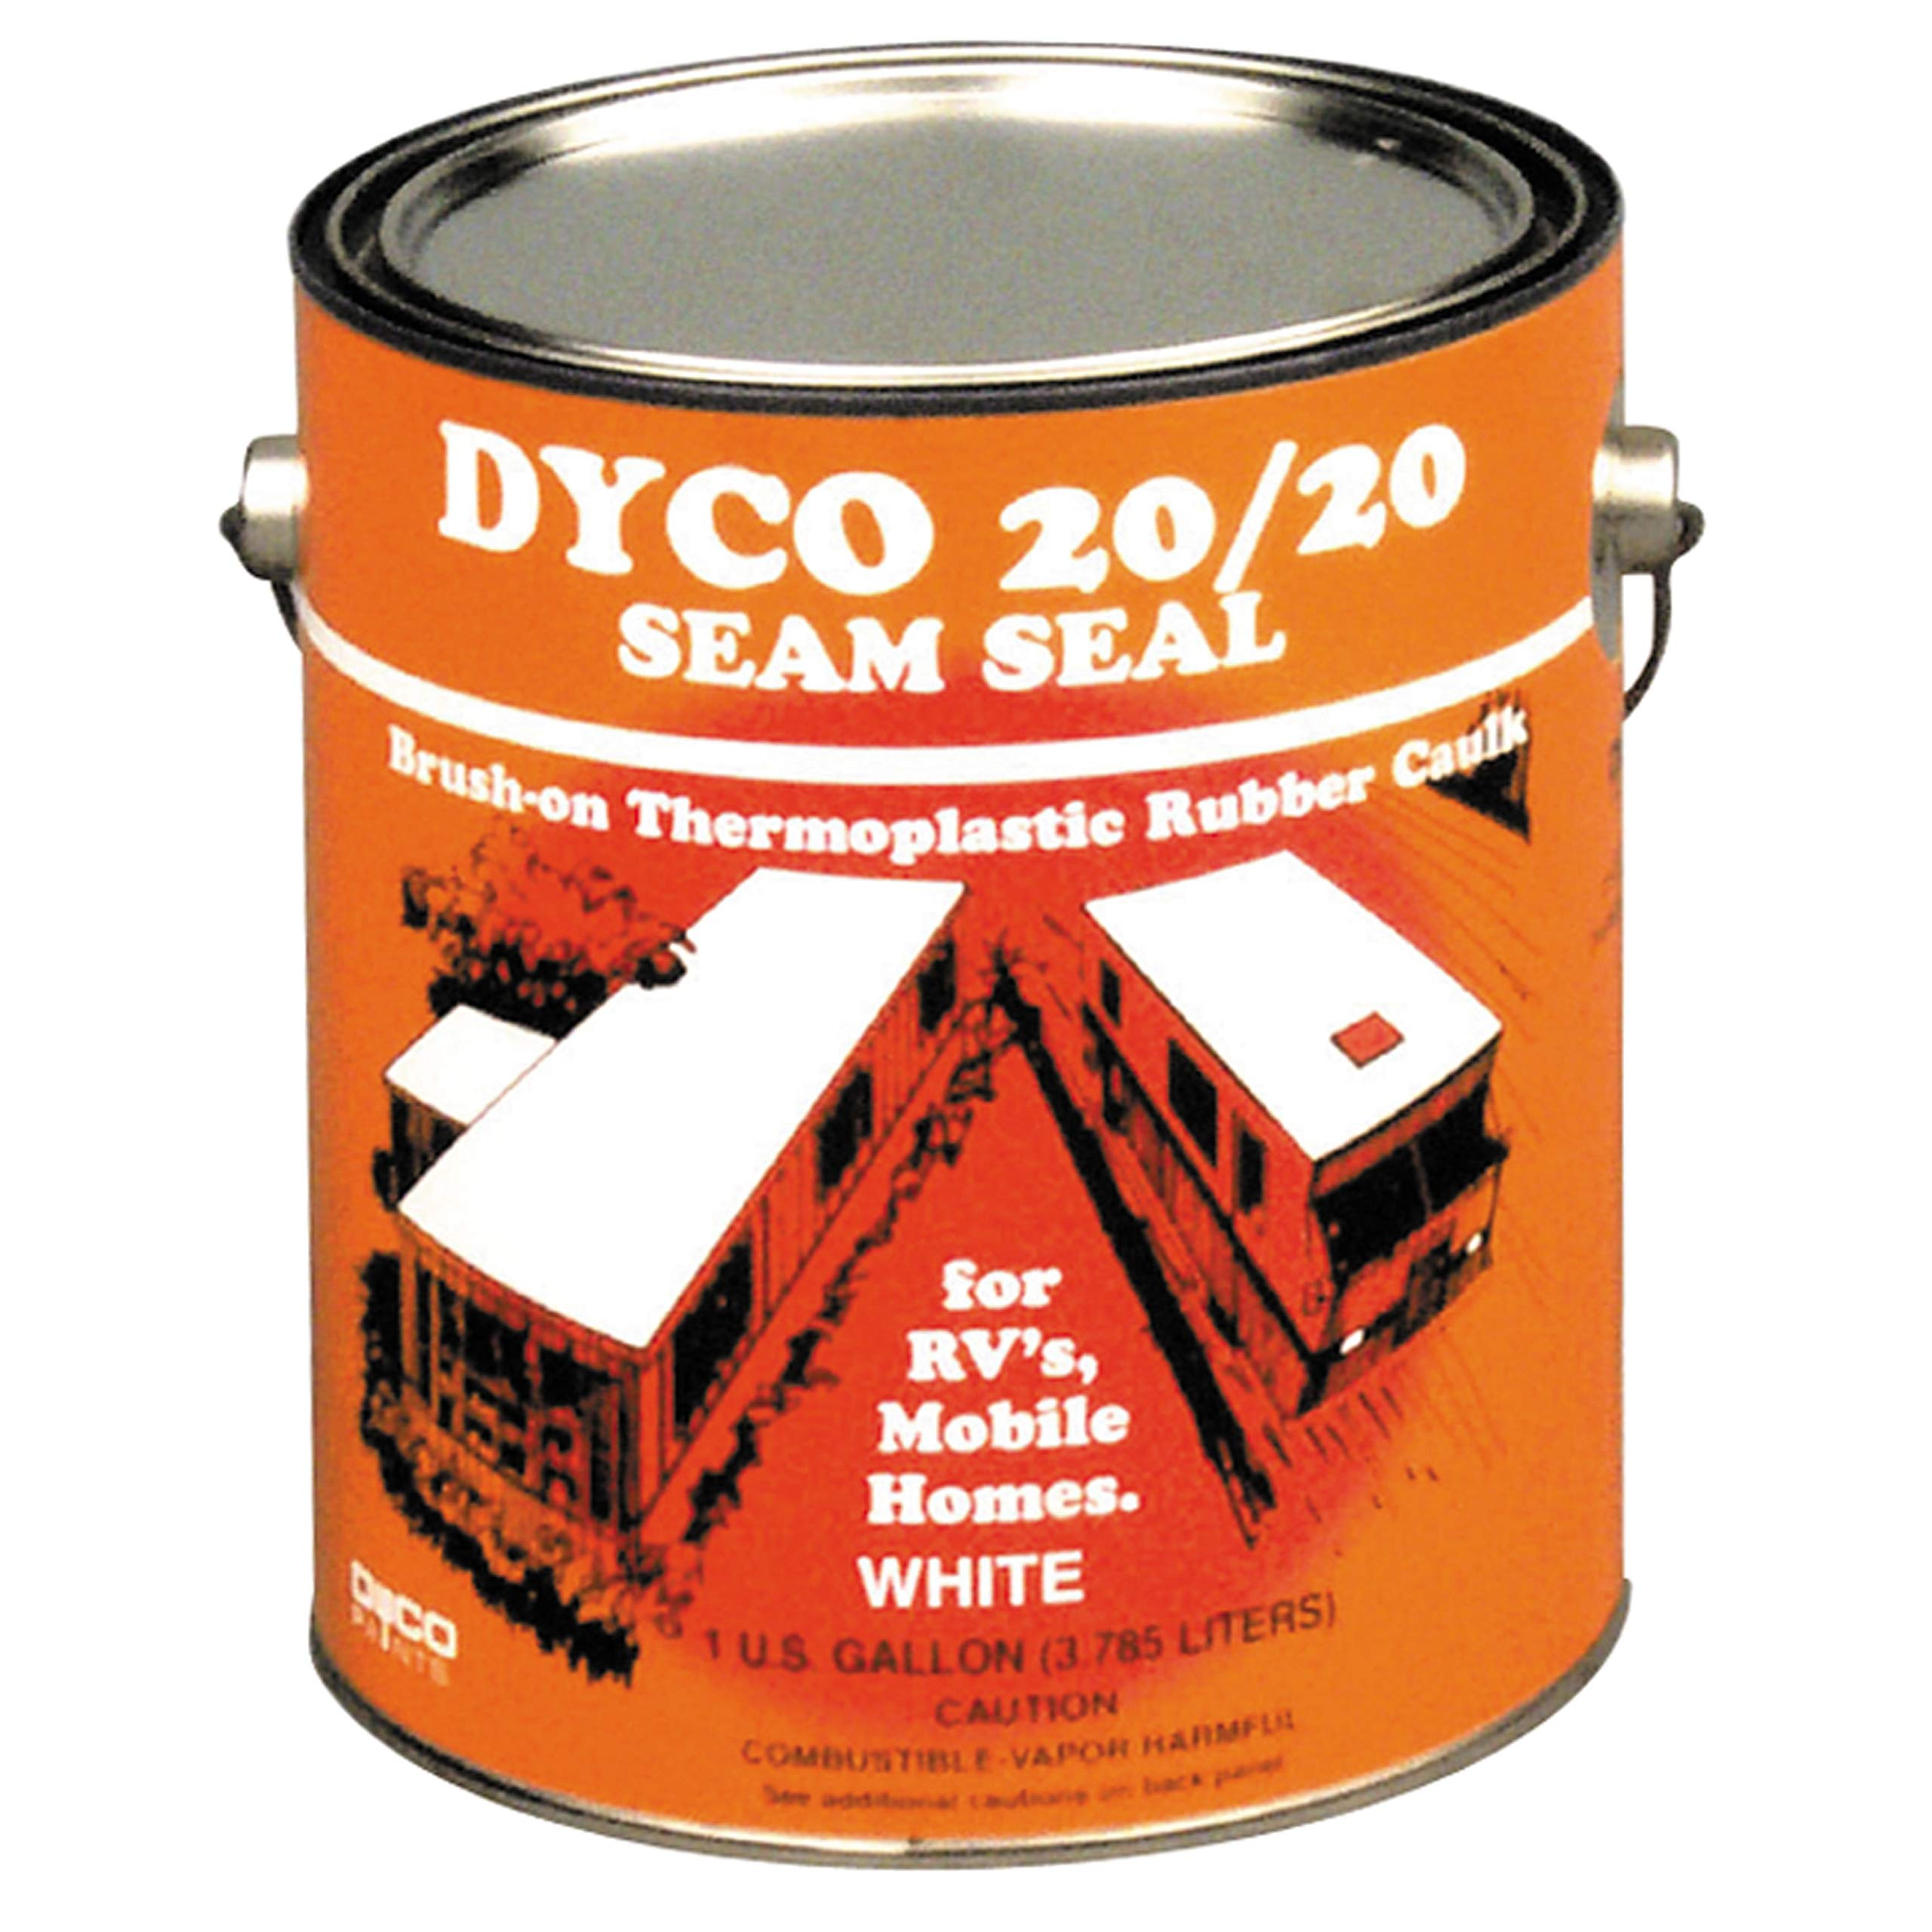 Dyco Paints 20/20-GAL Dyco Seam Seal White Gallon